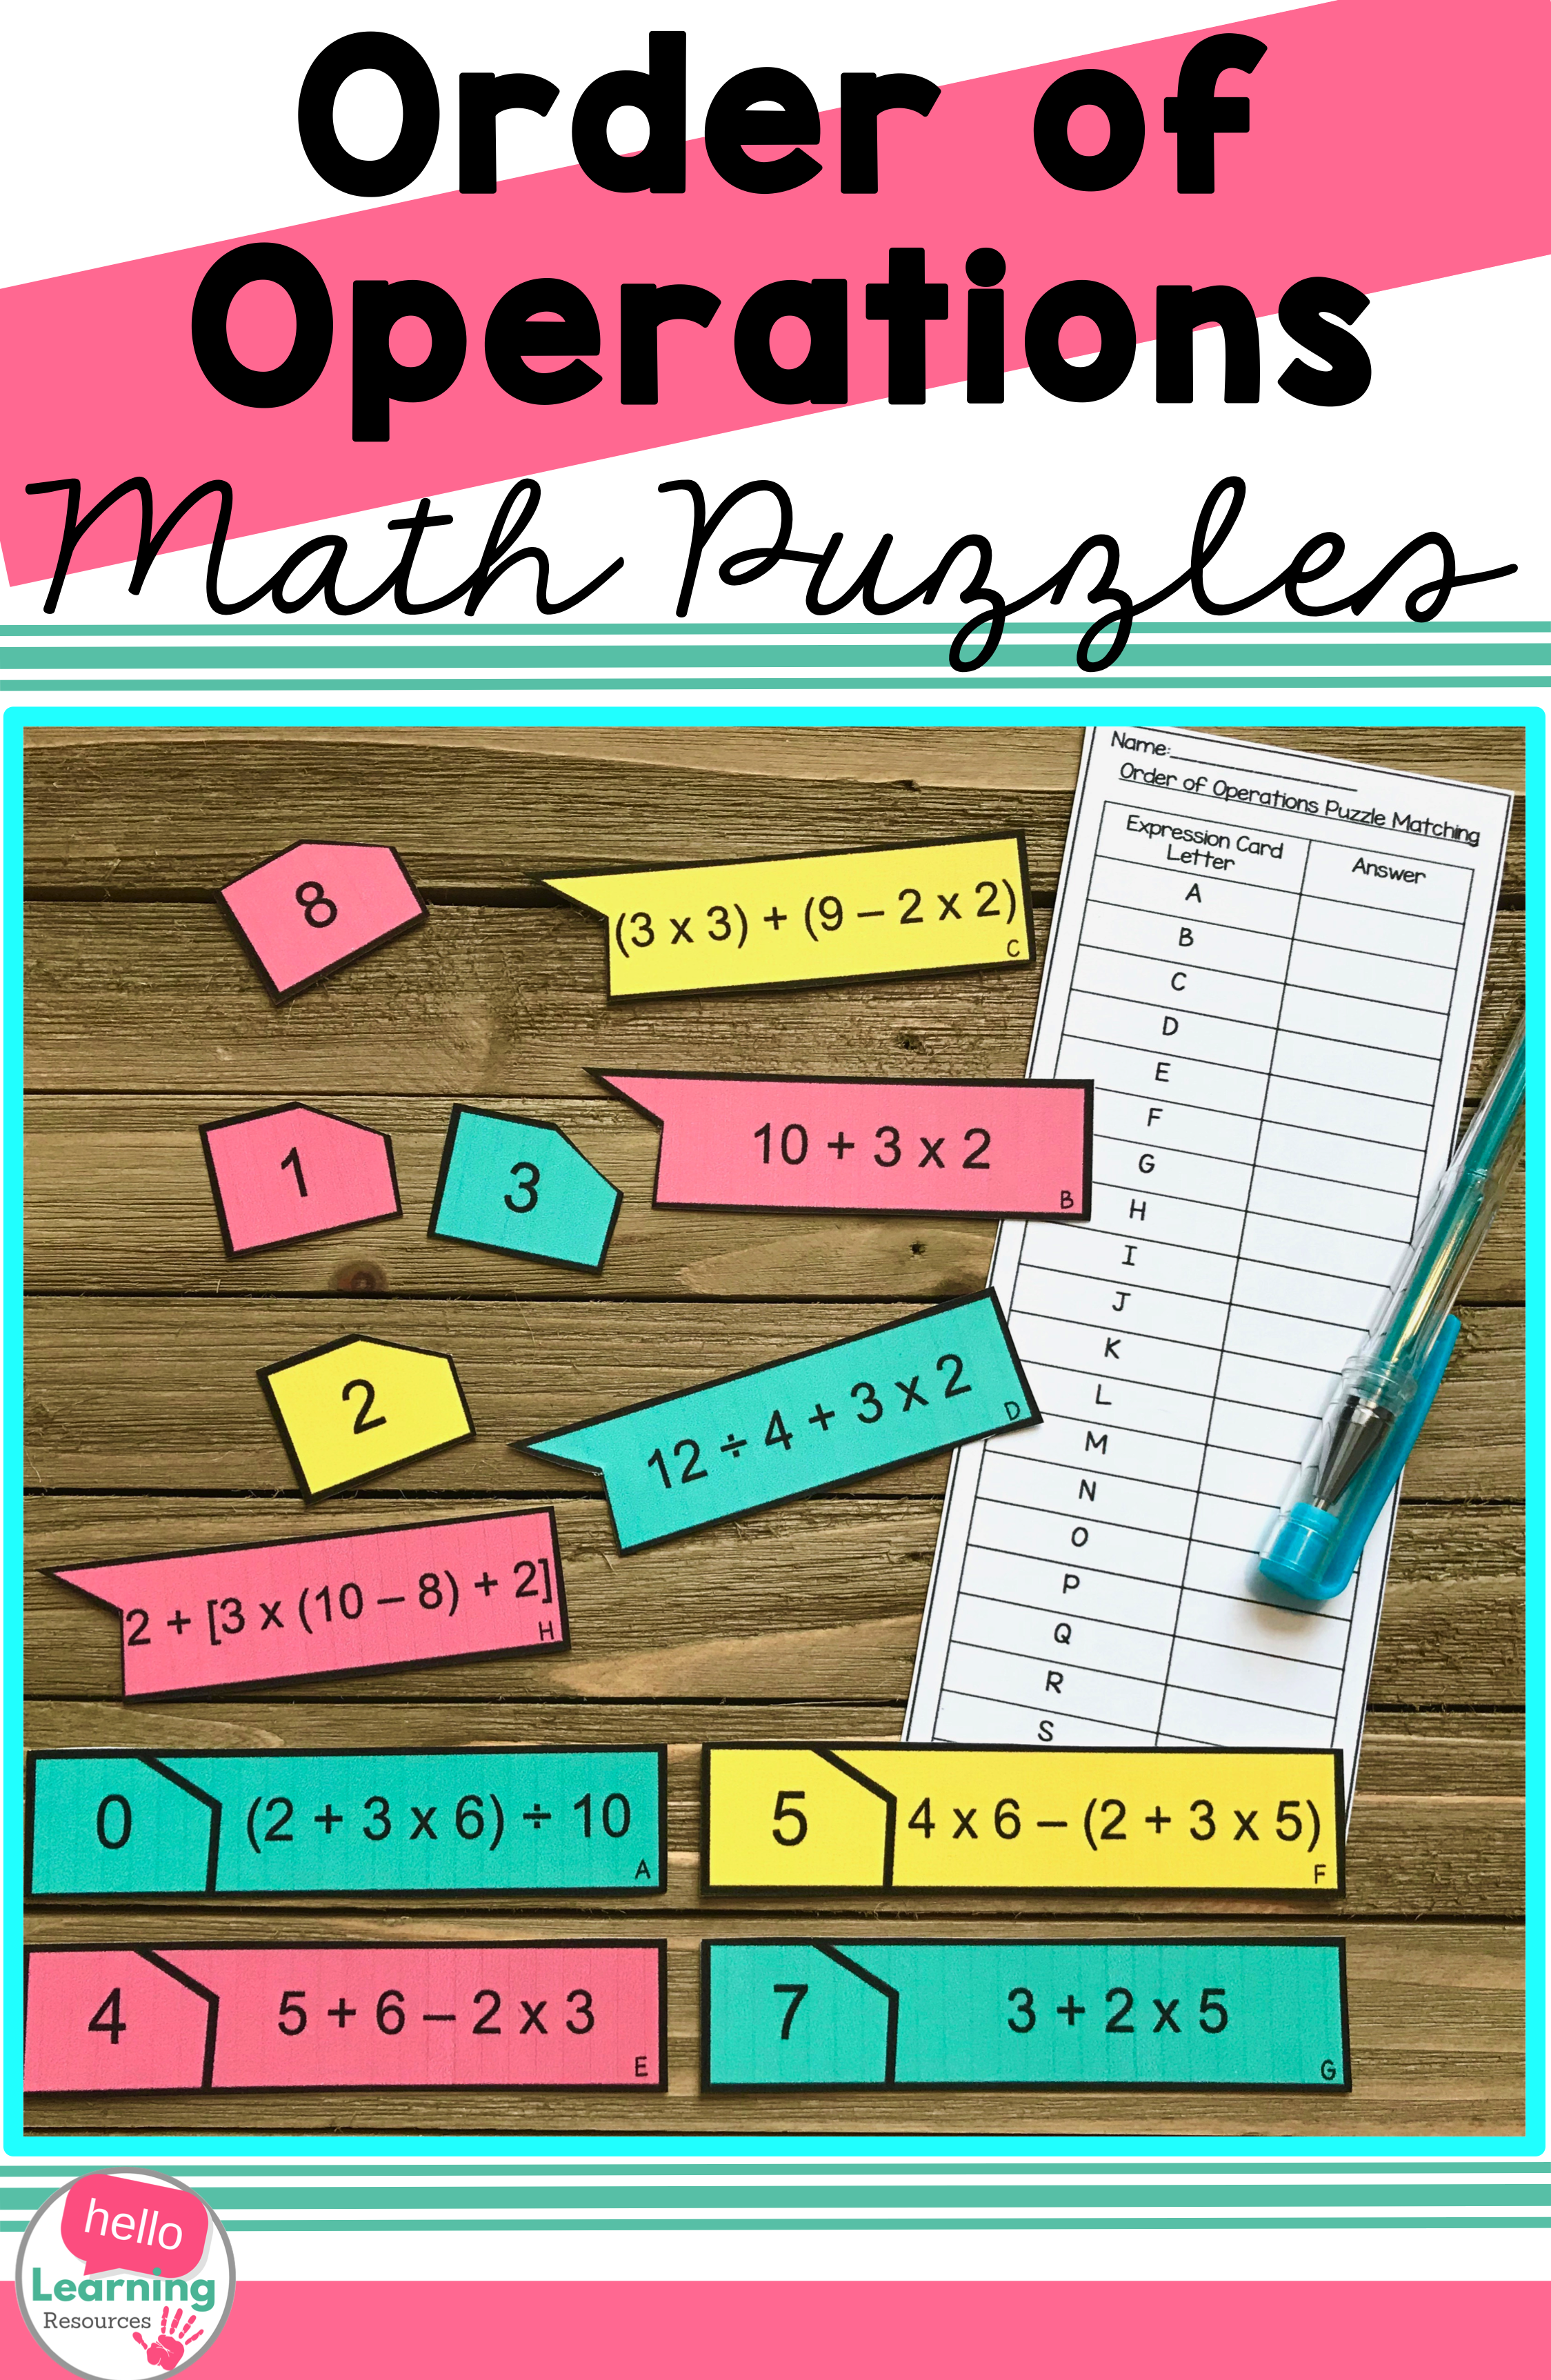 Order Of Operations Matching Puzzles